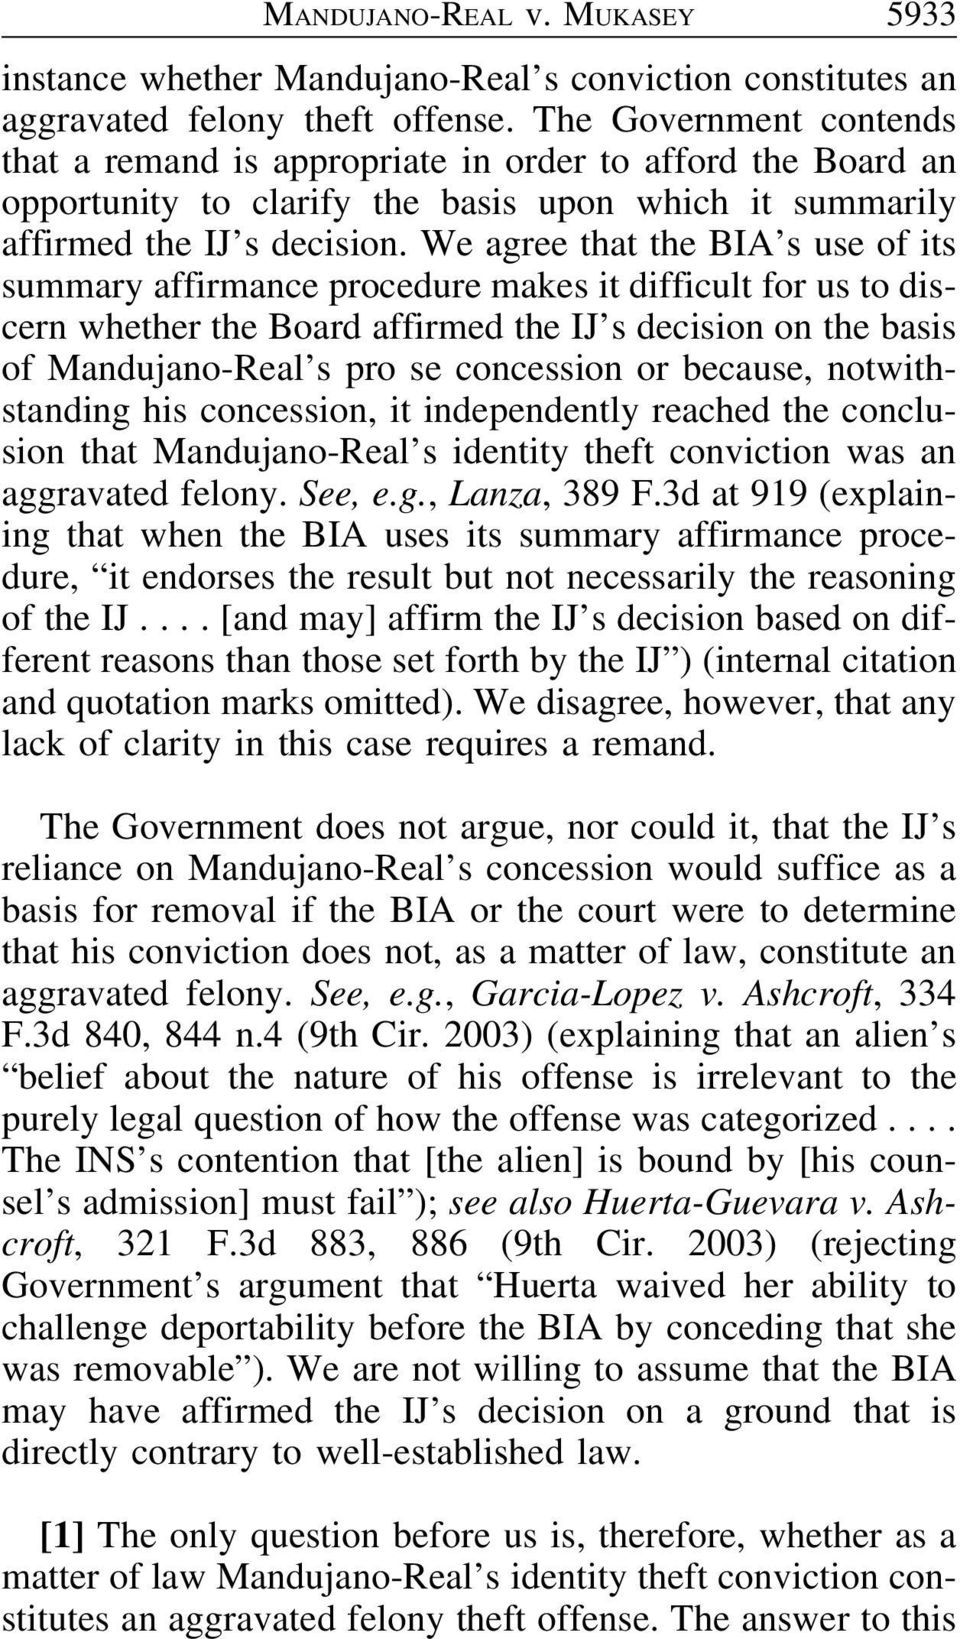 We agree that the BIA s use of its summary affirmance procedure makes it difficult for us to discern whether the Board affirmed the IJ s decision on the basis of Mandujano-Real s pro se concession or